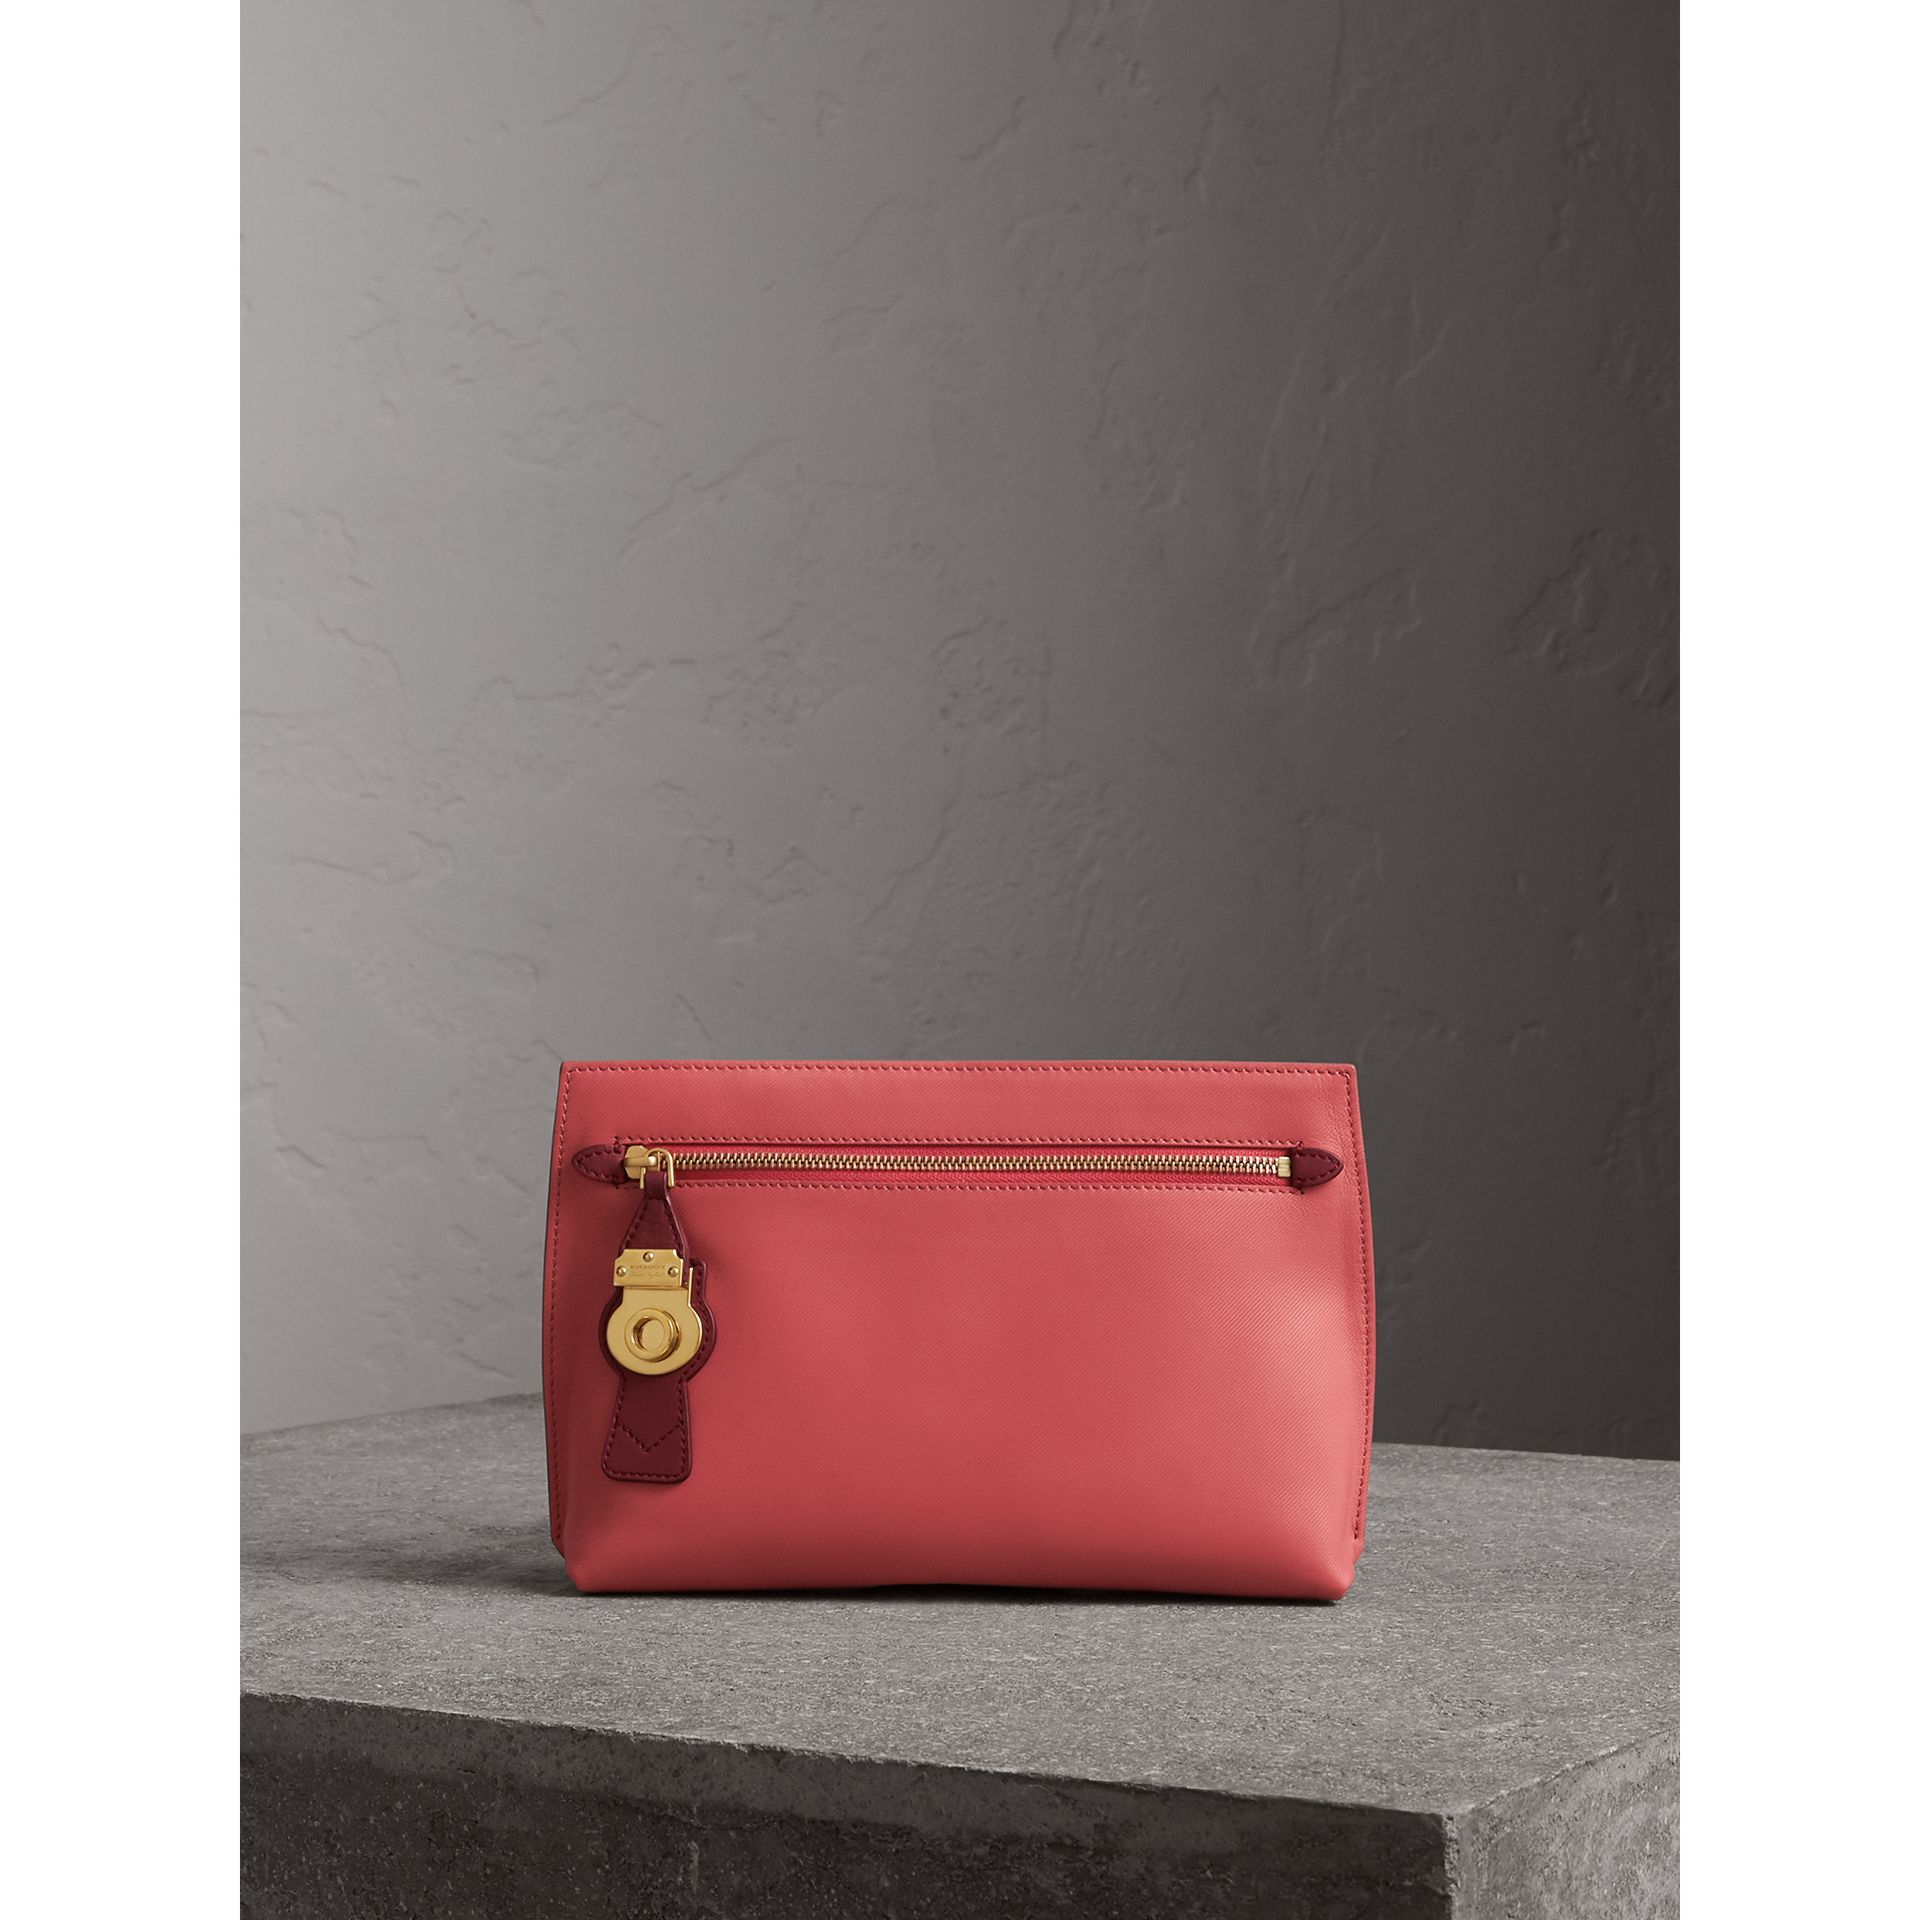 Two-tone Trench Leather Wristlet Pouch in Blossom Pink/antique Red - Women | Burberry - gallery image 0